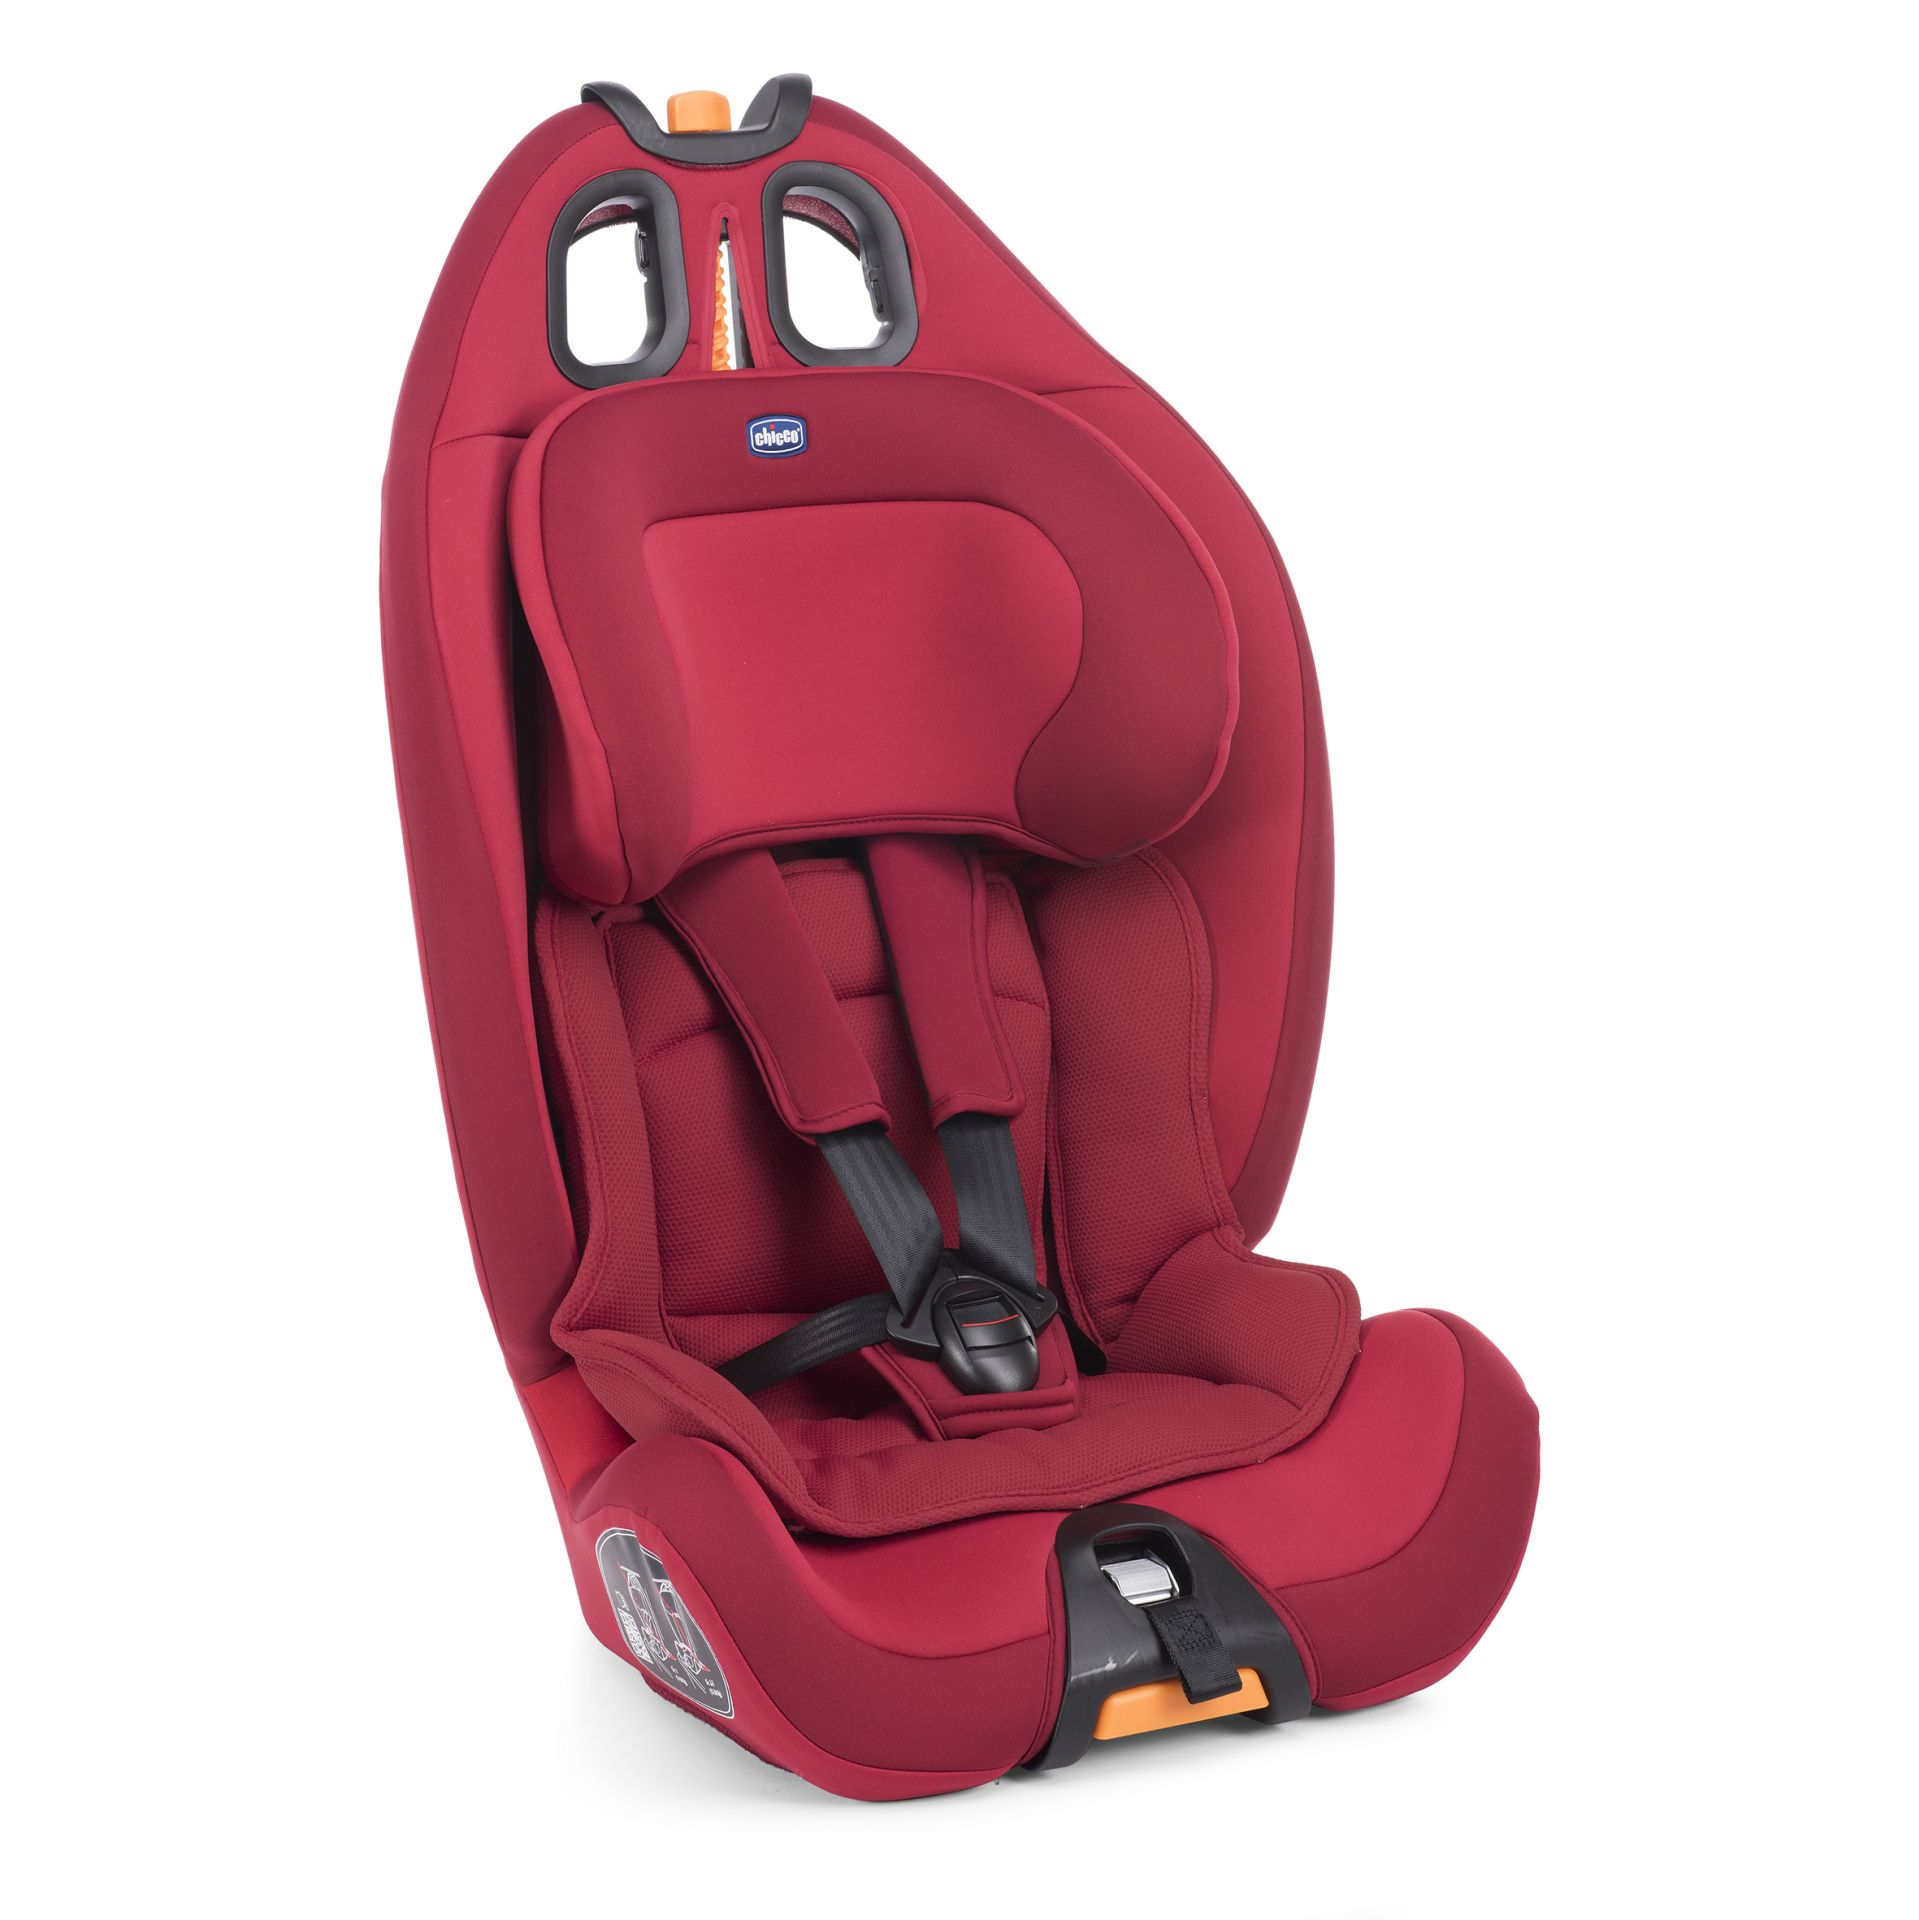 chicco car seat gro up 1 2 3 2018 red passion buy at kidsroom car seats. Black Bedroom Furniture Sets. Home Design Ideas